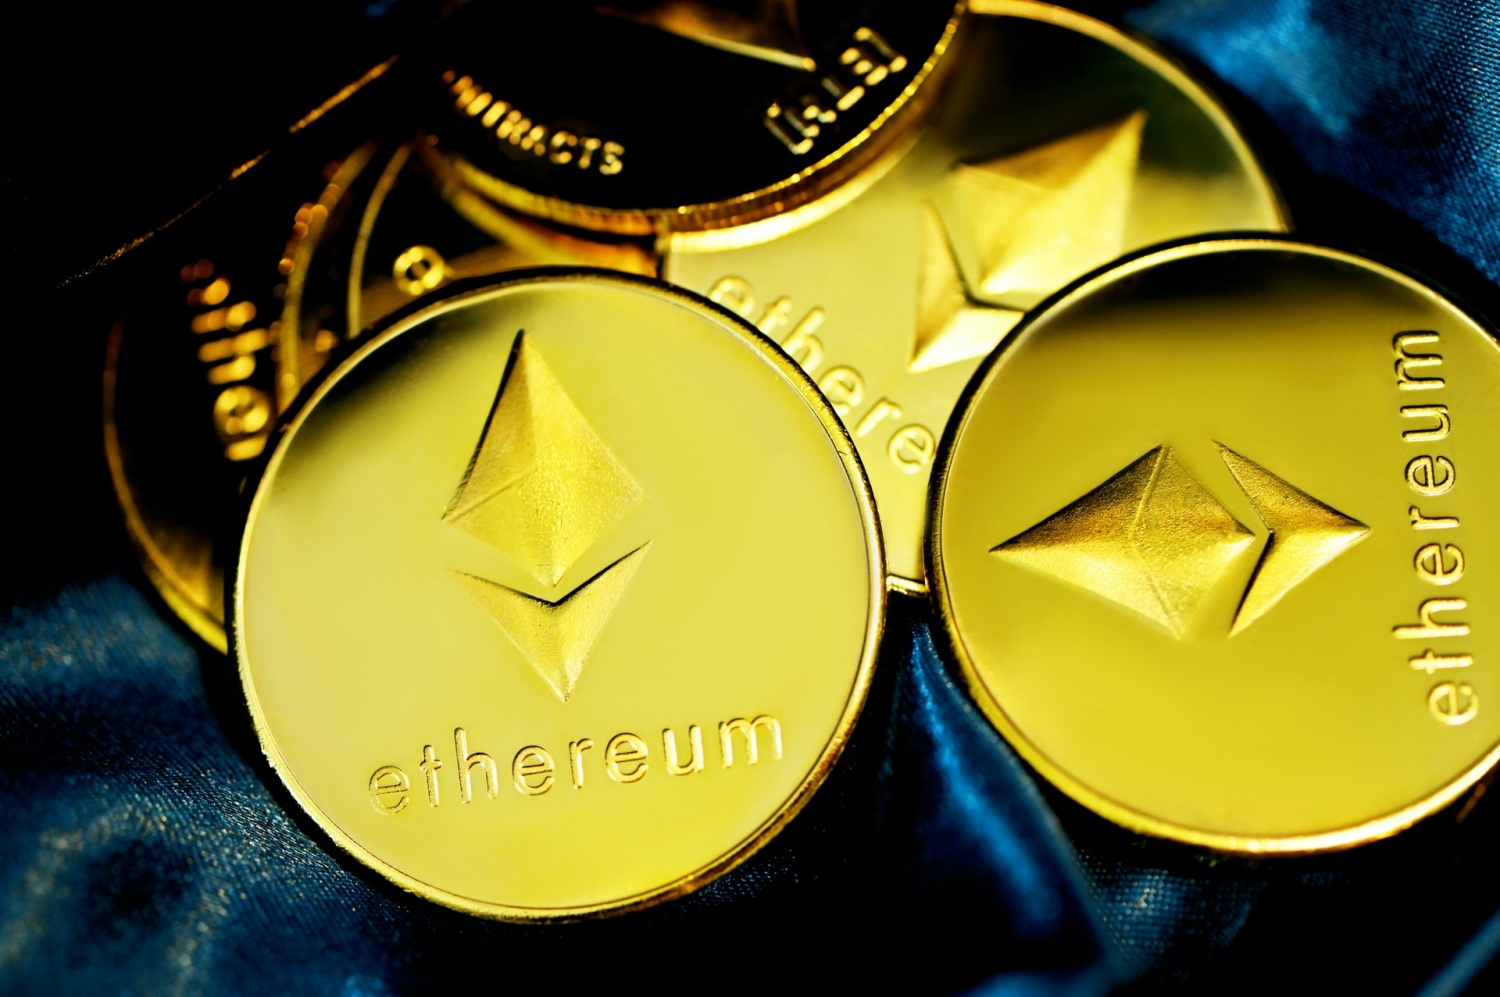 Ethereum Price Prediction: ETH Value Suffers Massive Crash After Co-Founder Exit